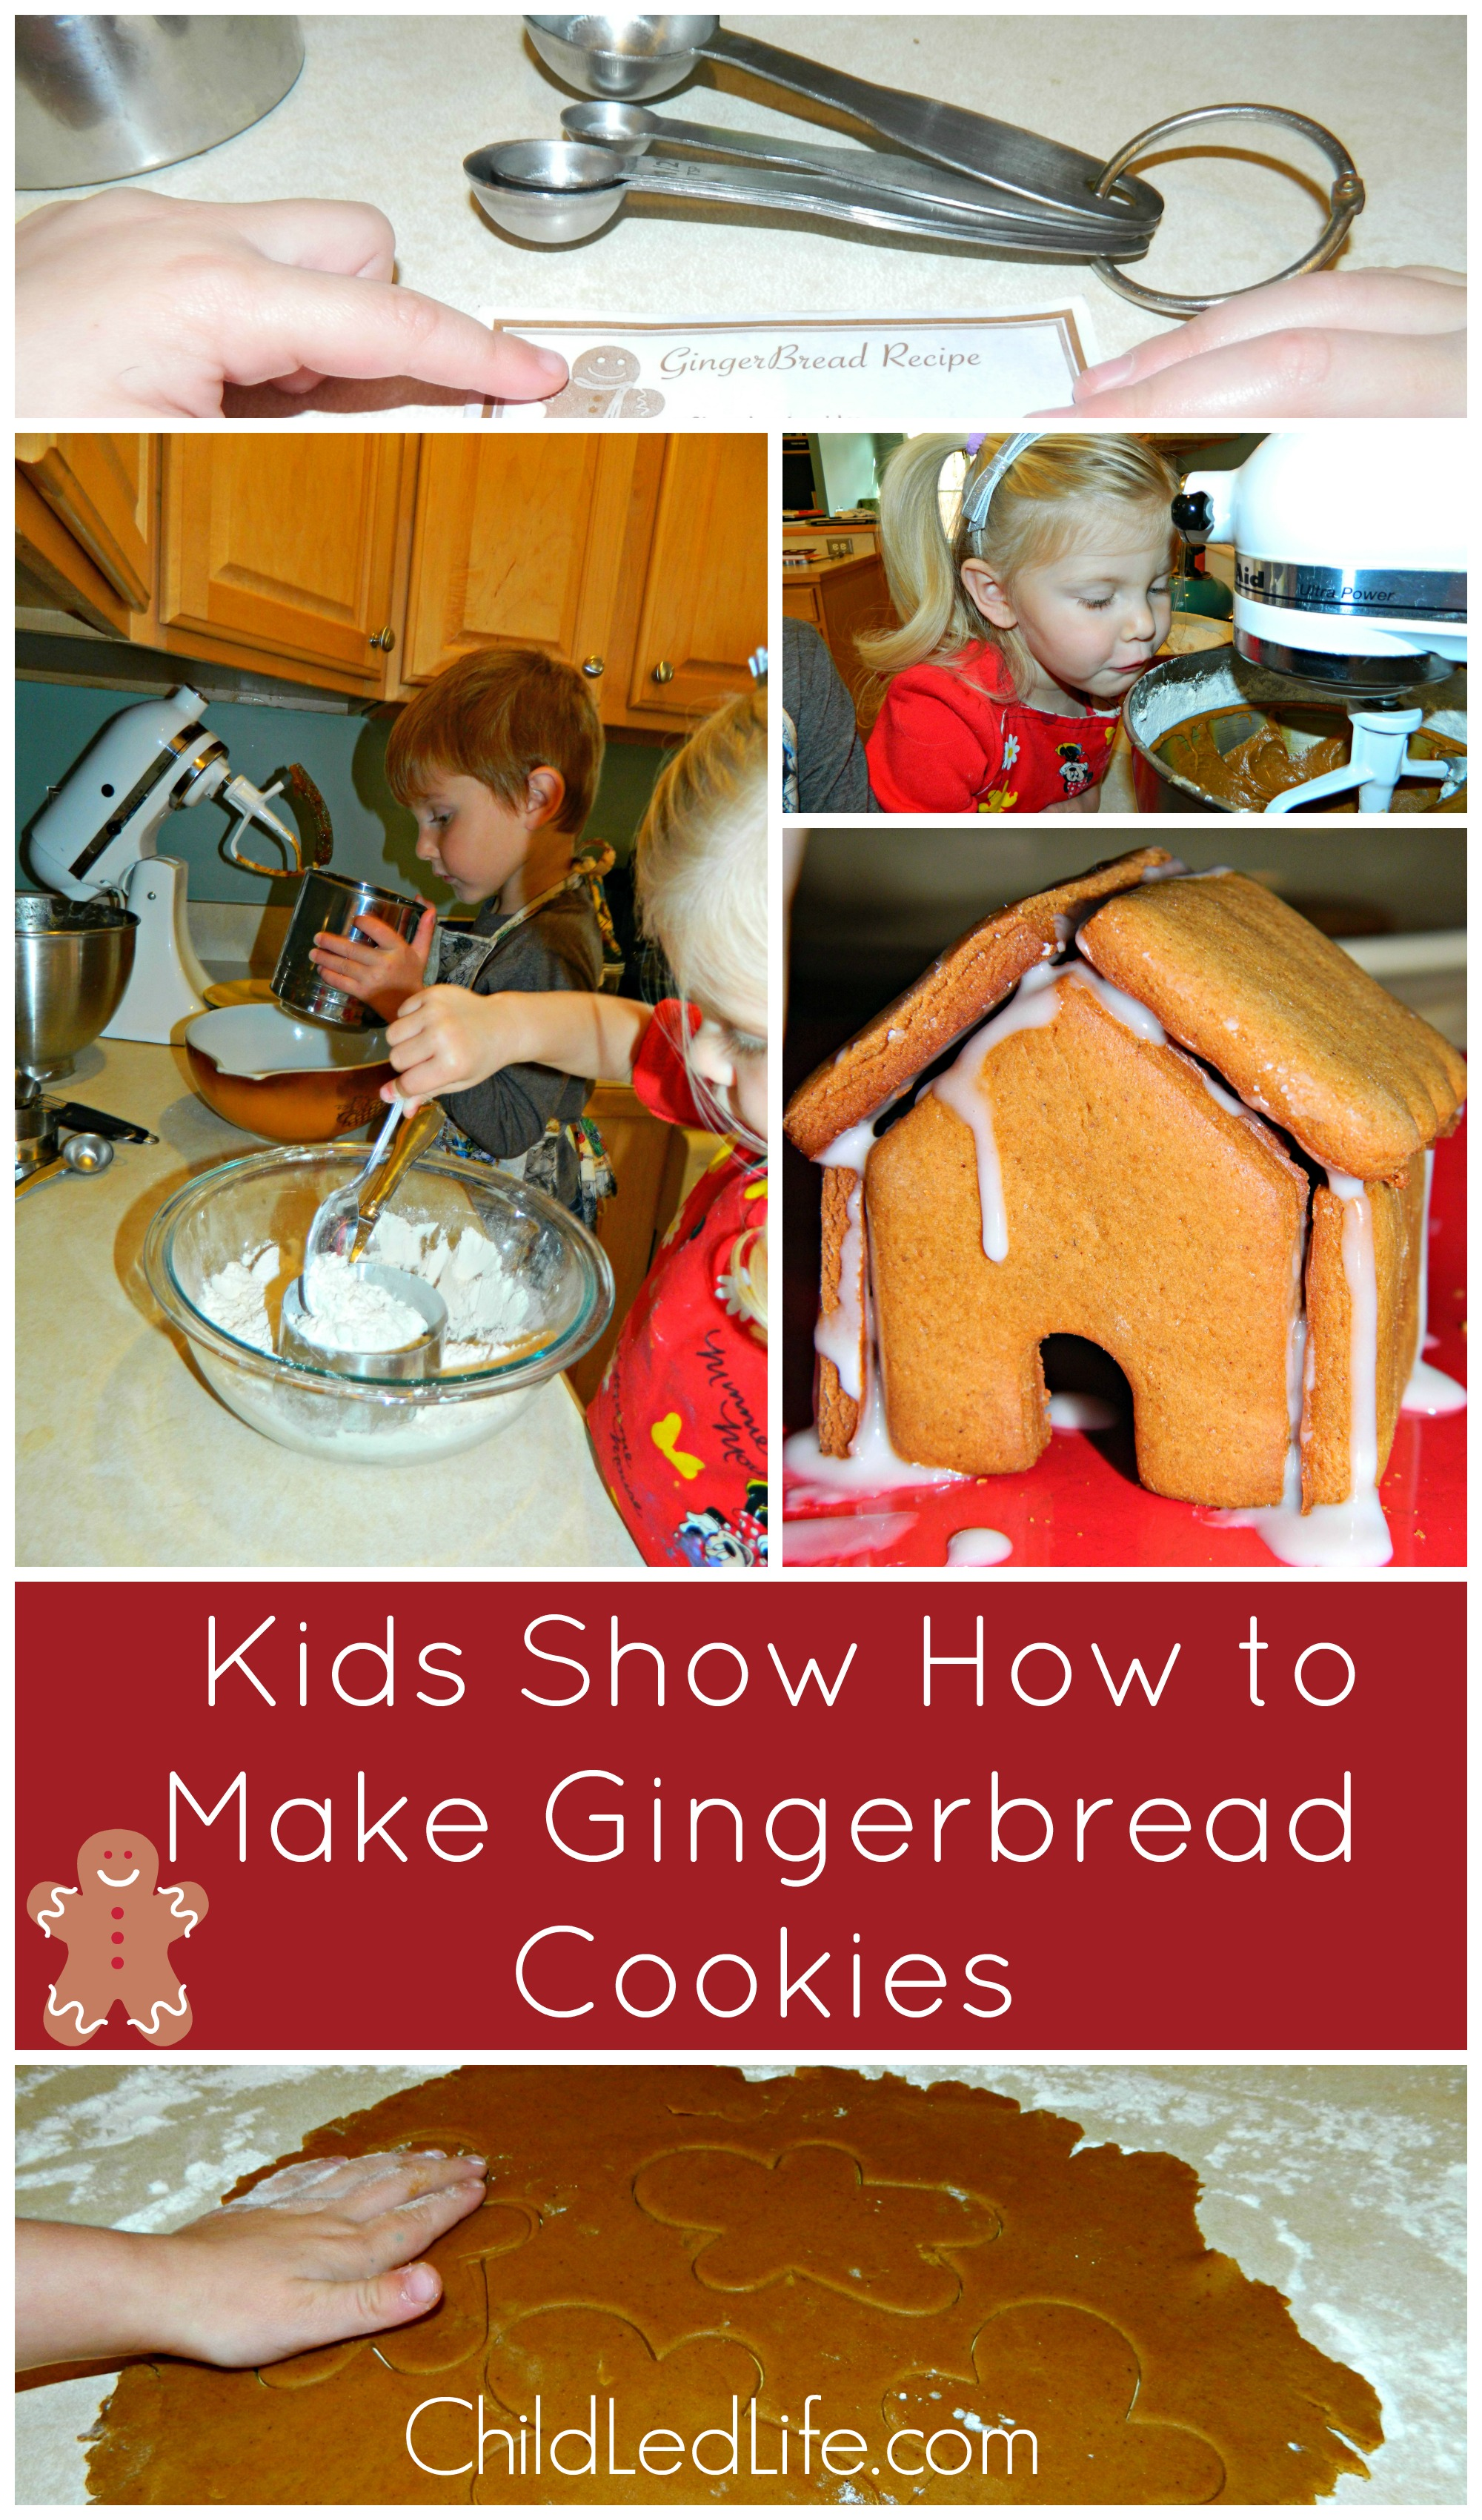 Kids Show How to Make Gingerbread Cookies